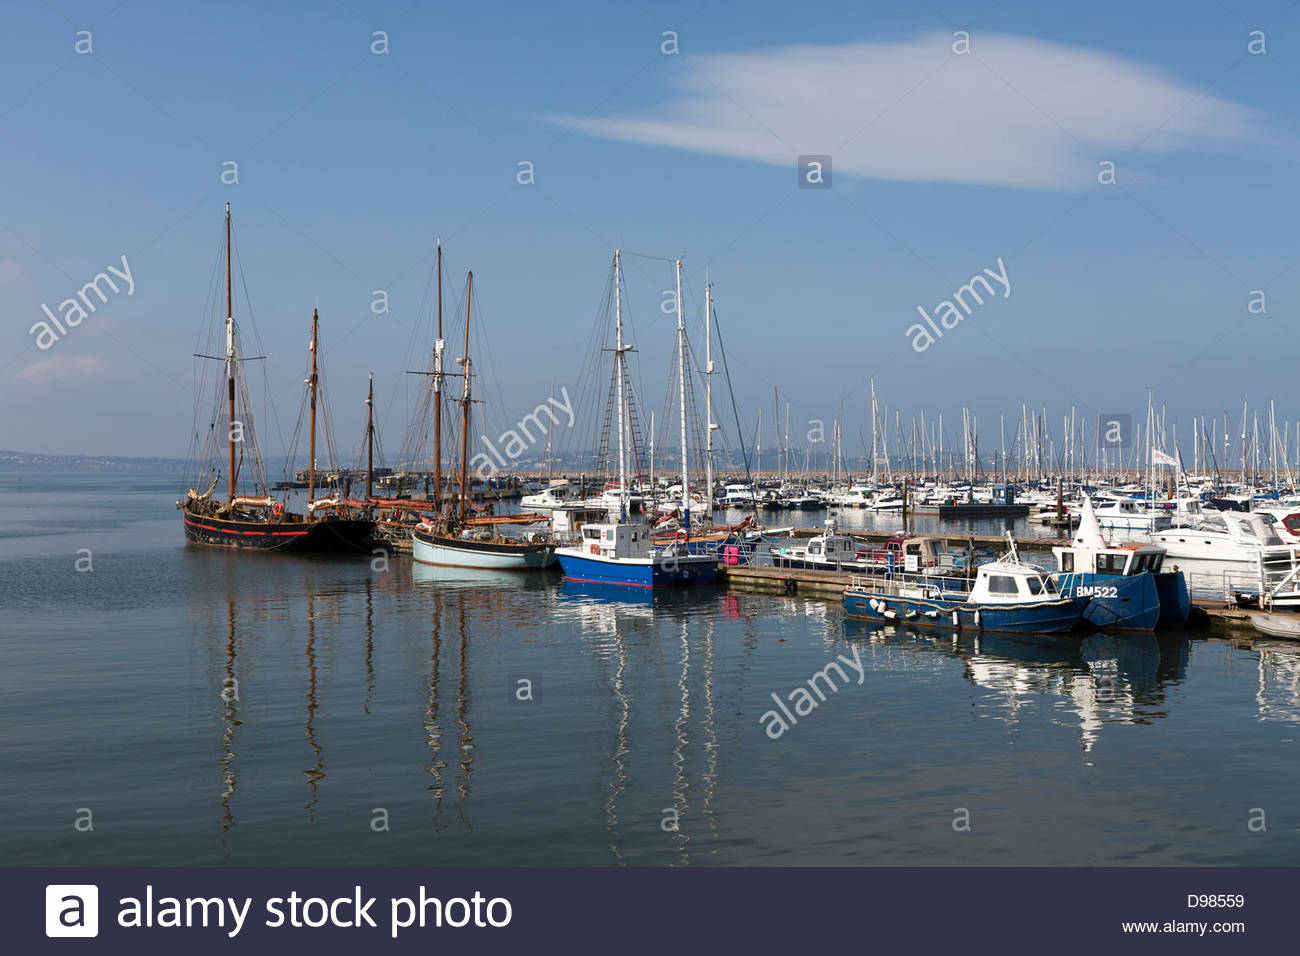 Sailing ketch and other sail boats at the deep water jetty, Brixham Harbour - Stock Image